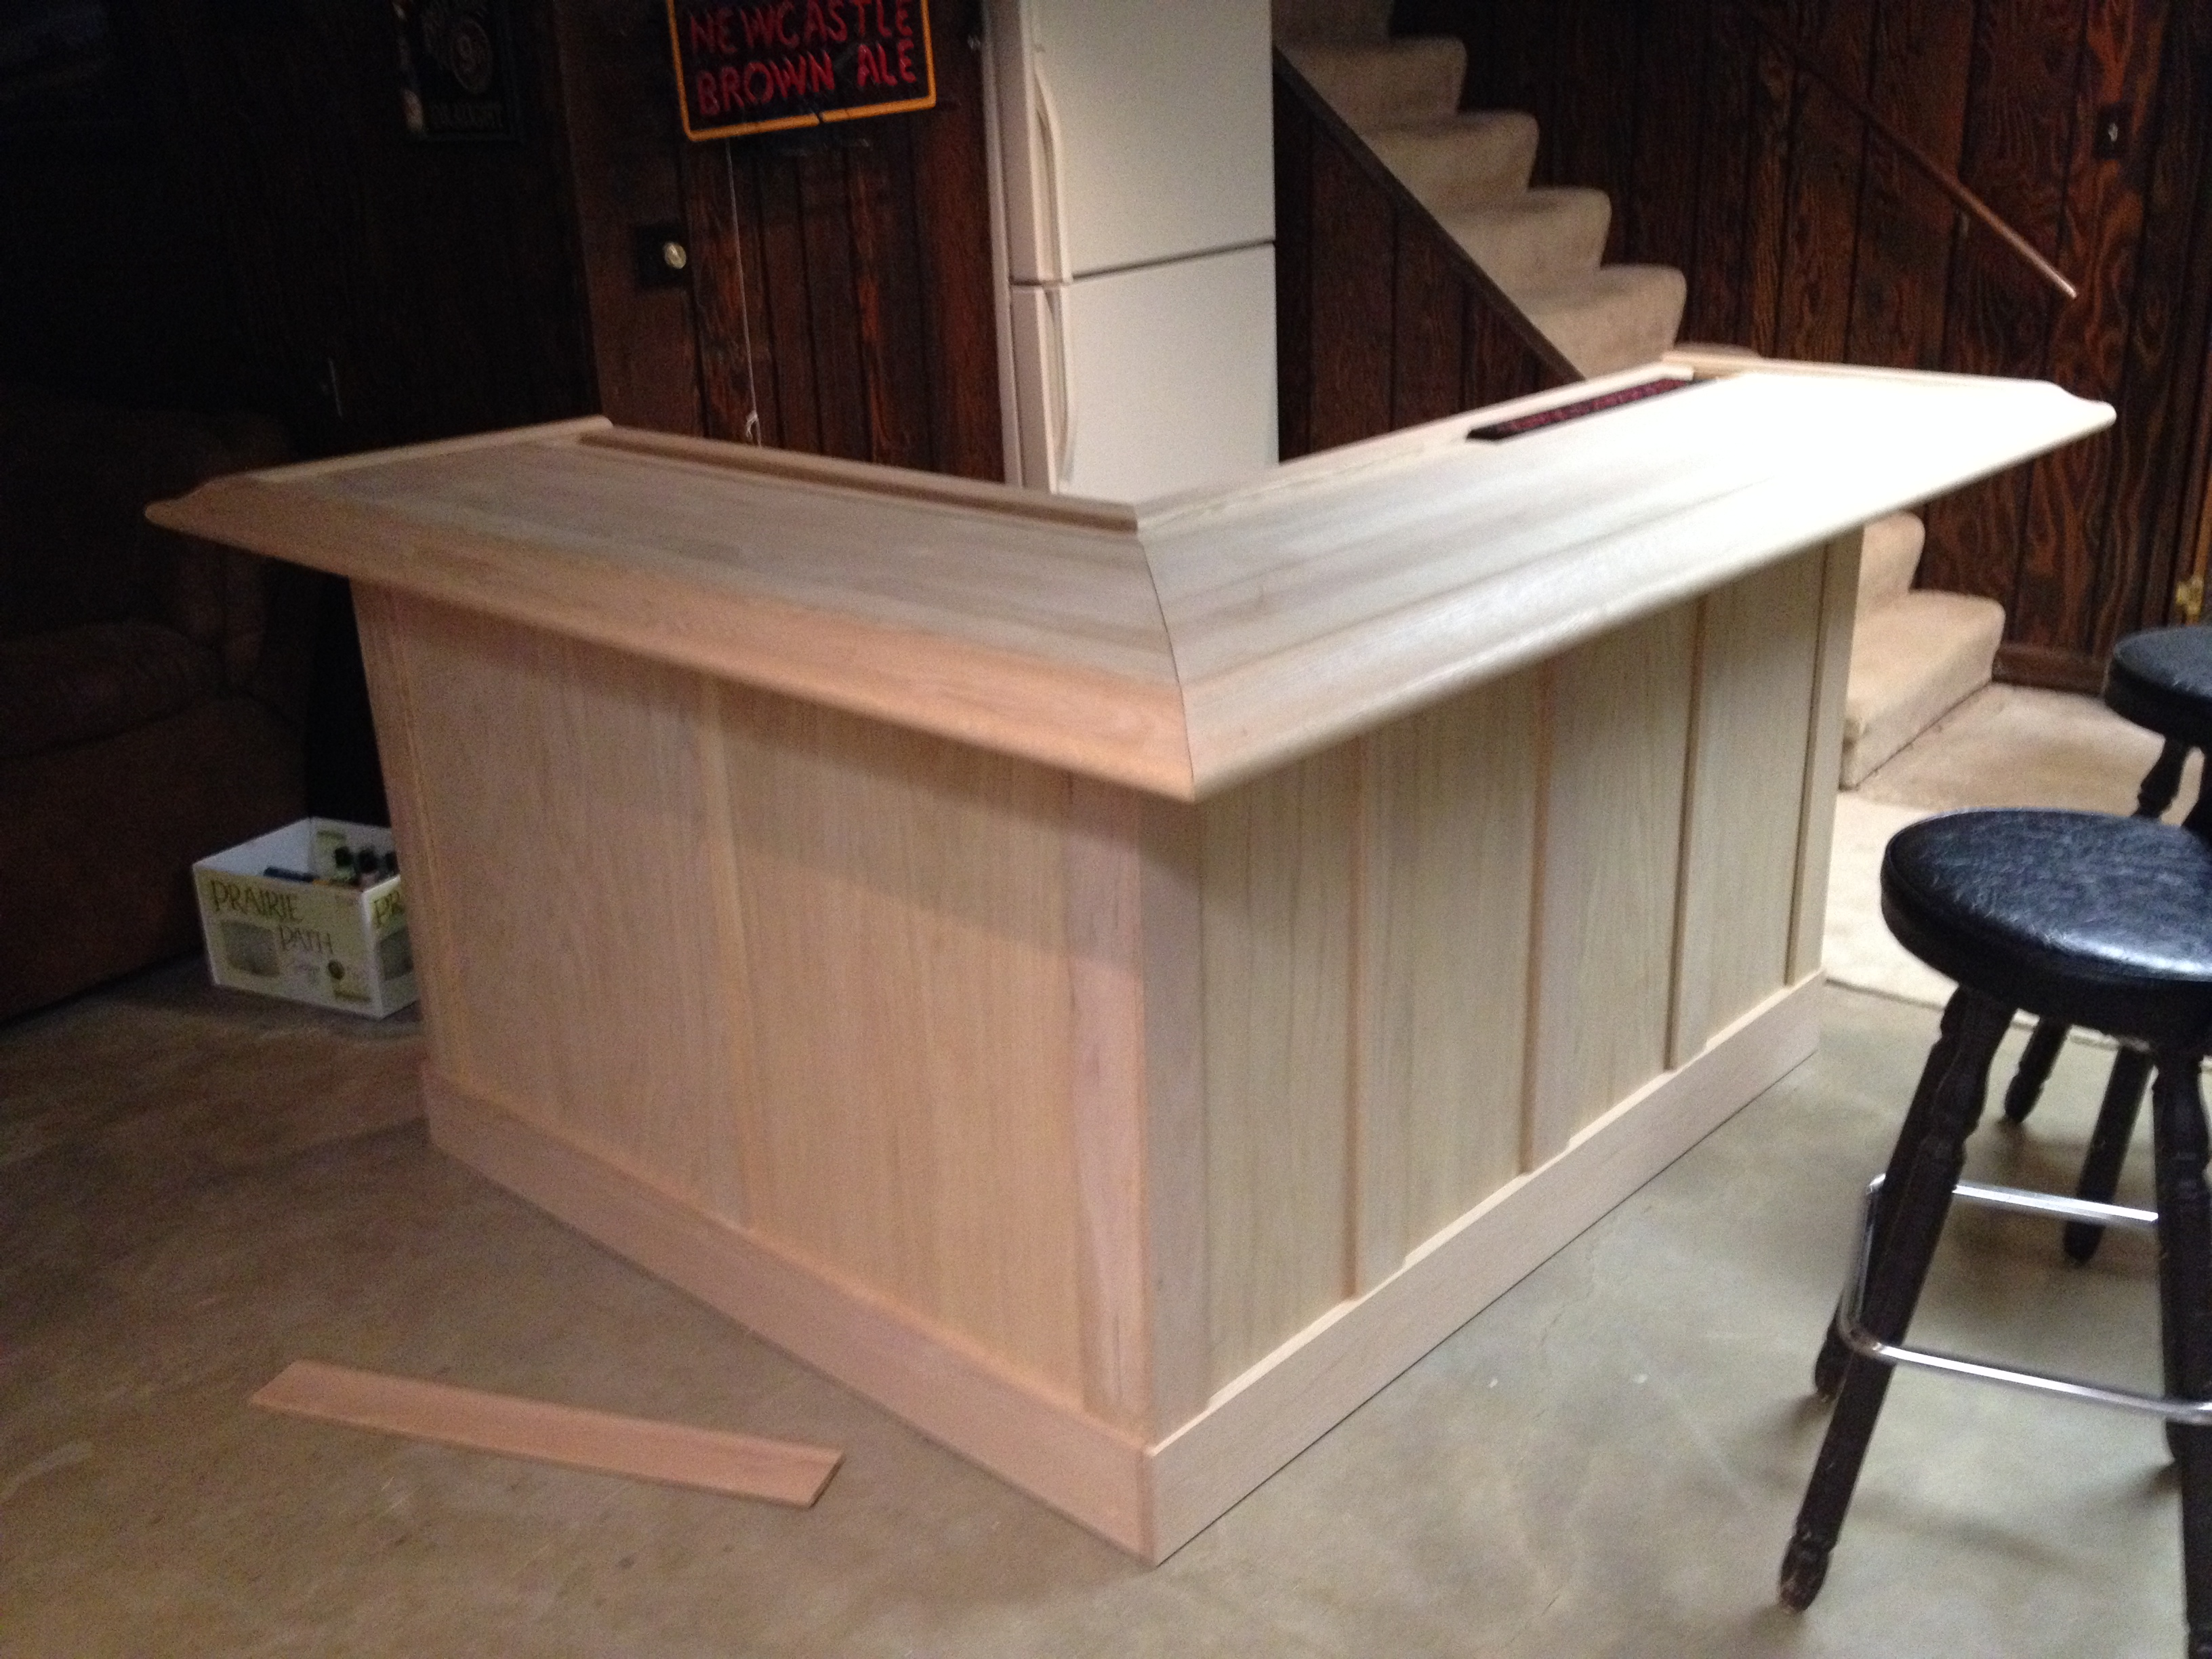 John everson dark arts blog archive diy how to build your own oak home bar - How to design a bar ...